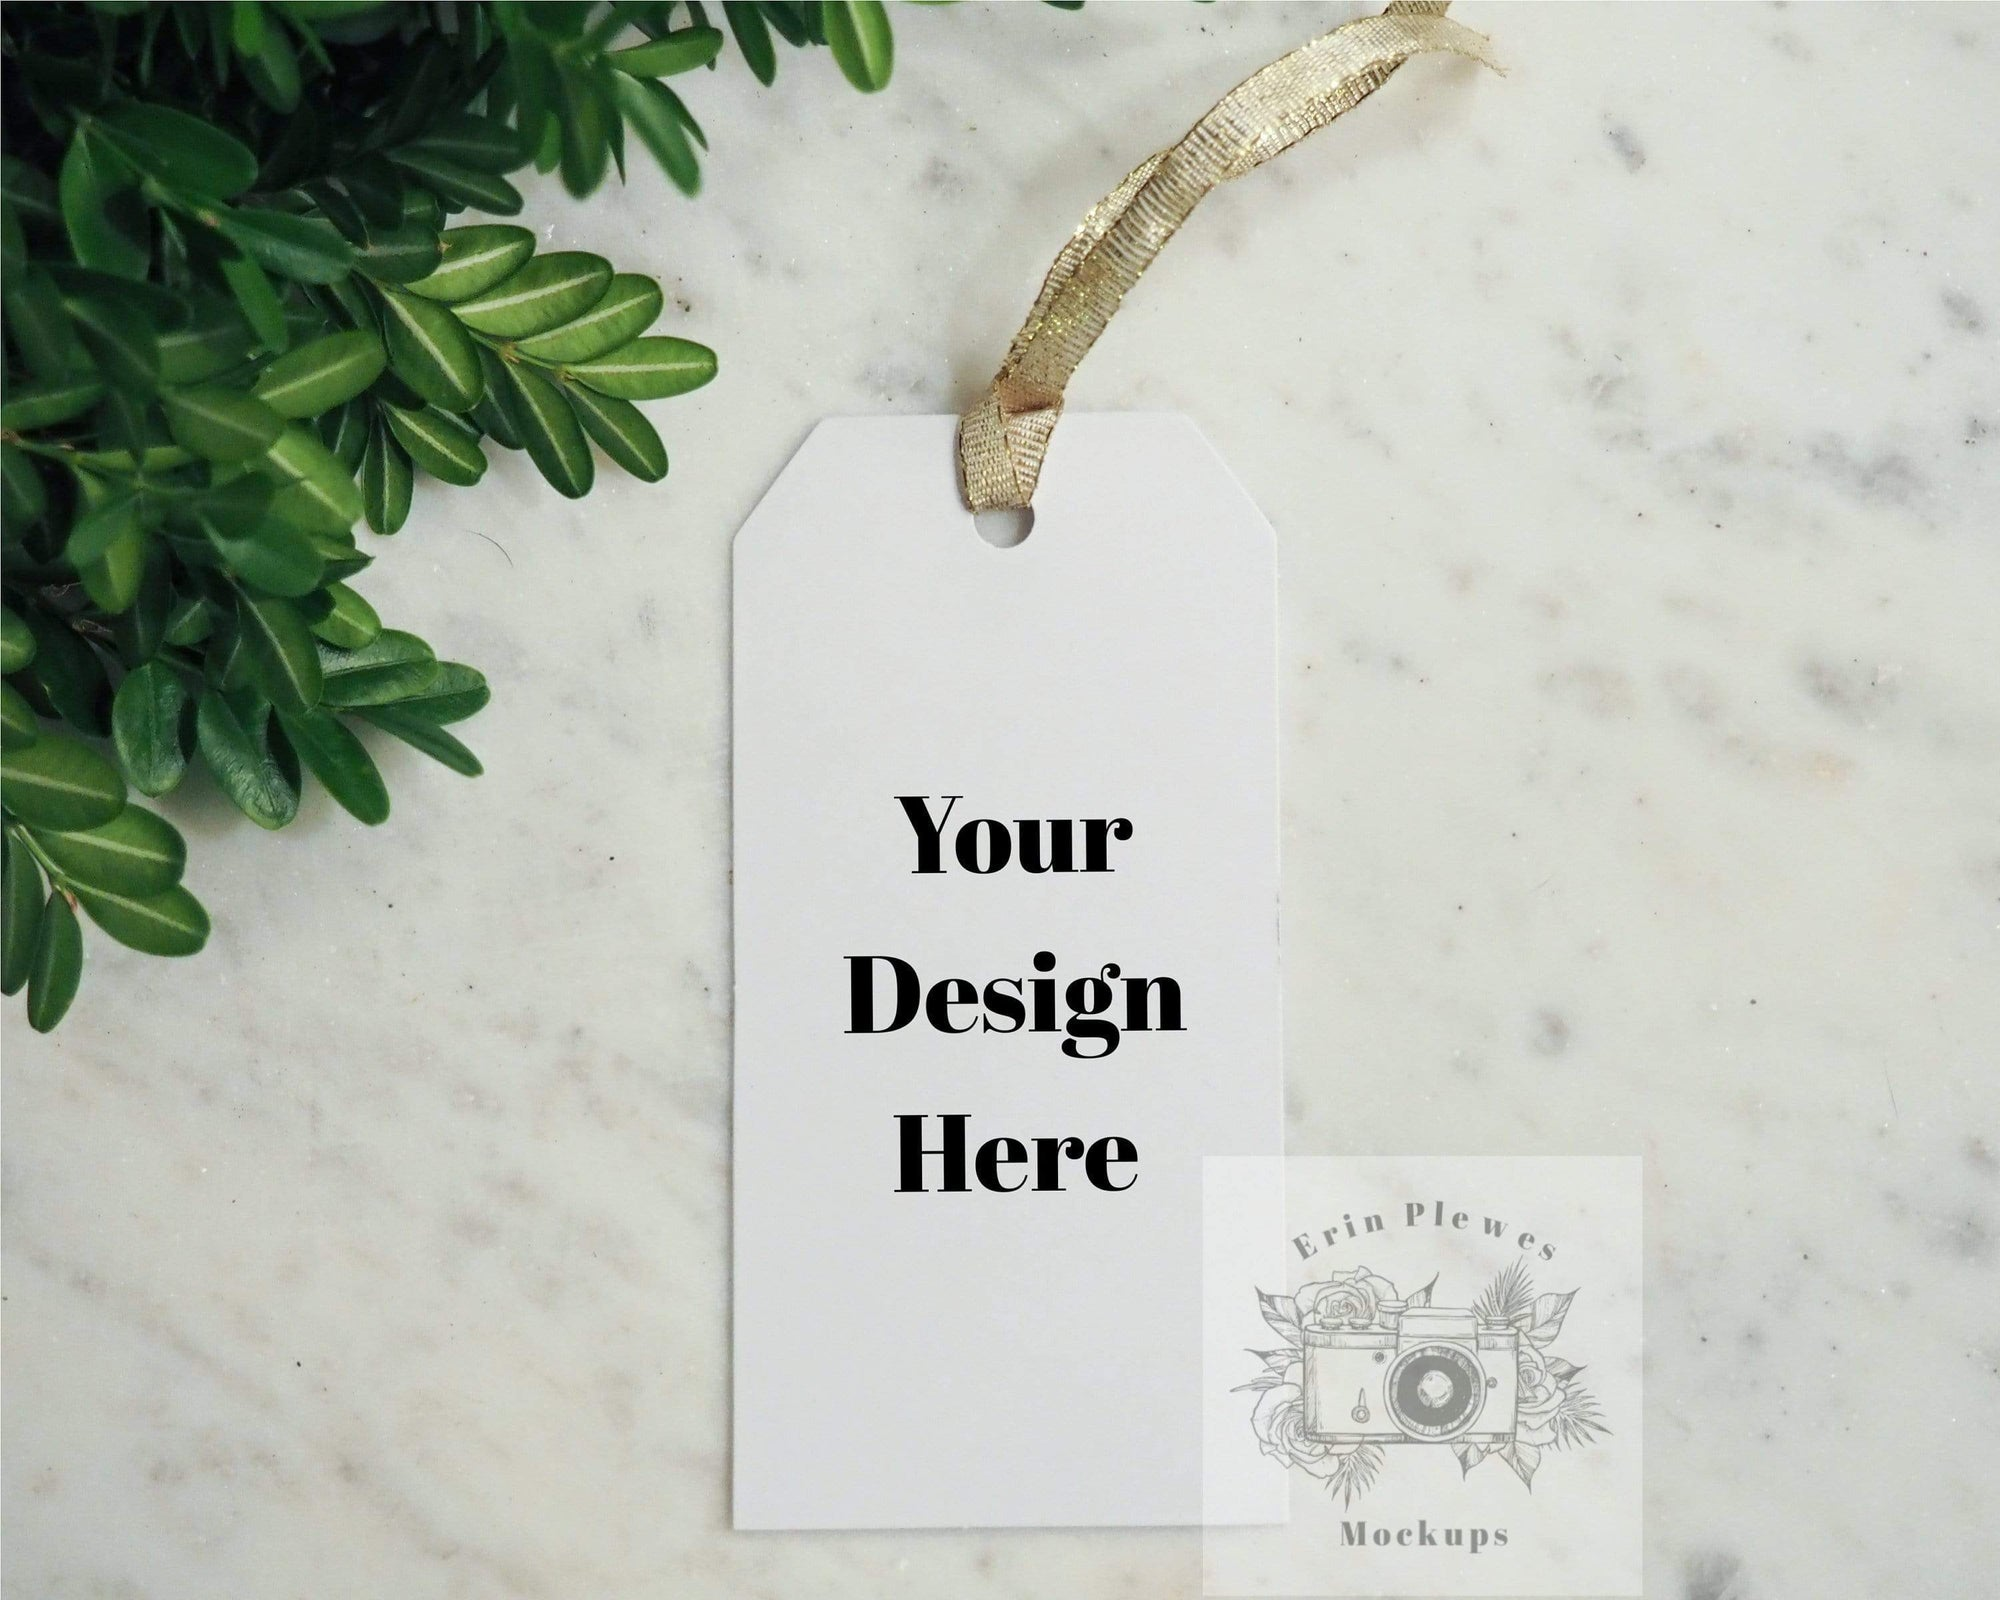 Erin Plewes Mockups Gift Tag Mockup, Hang Tag Mock Up for thank you gift bags, Minimalist template for your label design